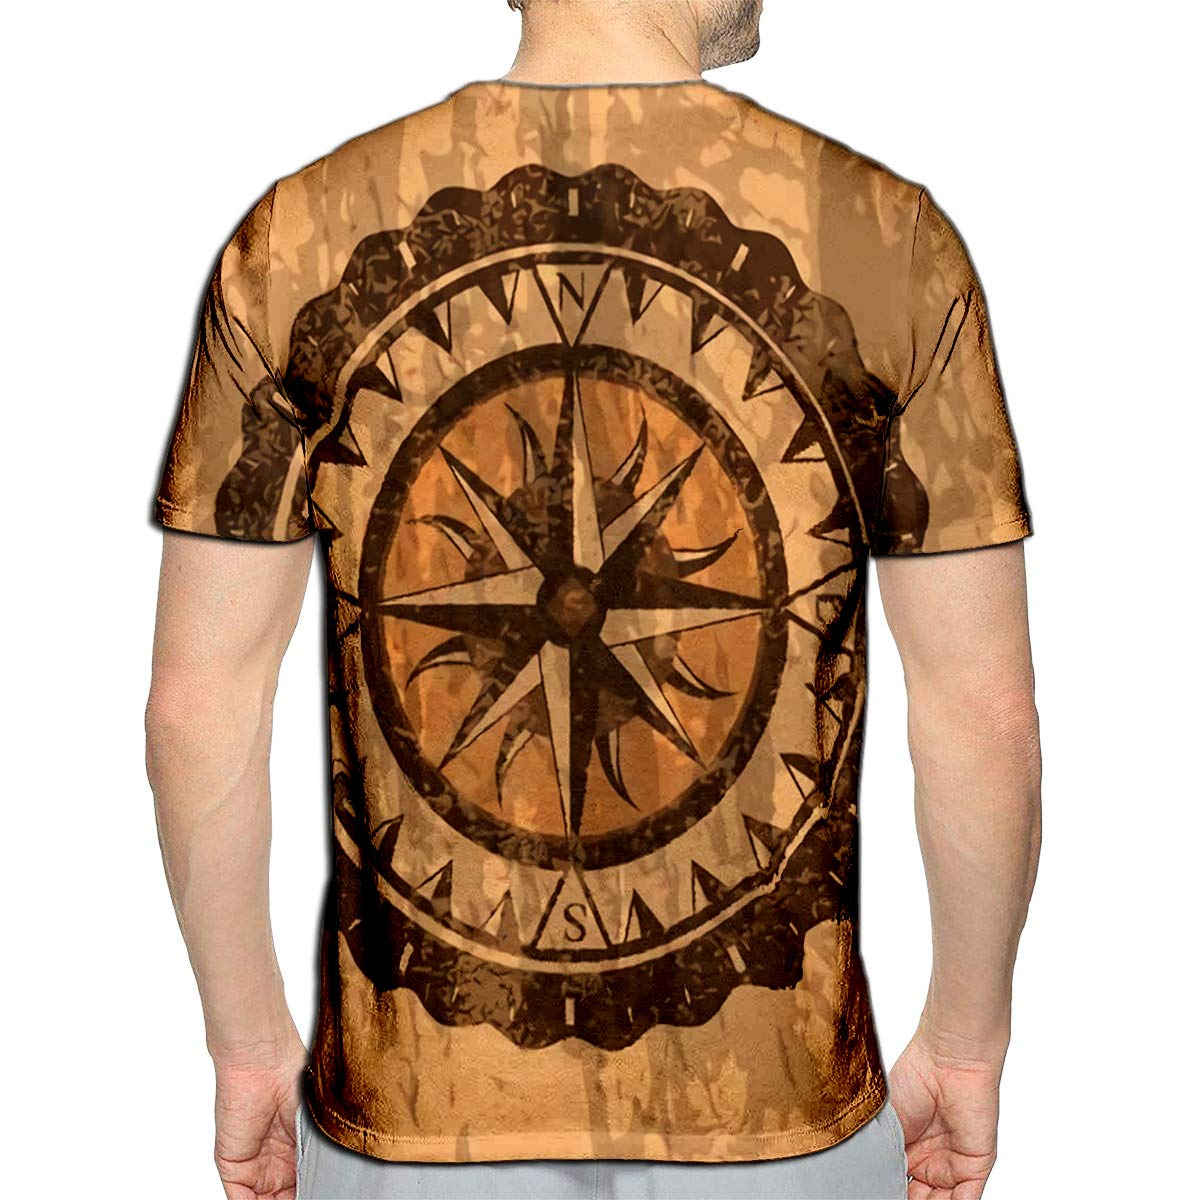 YILINGER 3D Printed T-Shirts Indian Festival Short Sleeve Tops Tees